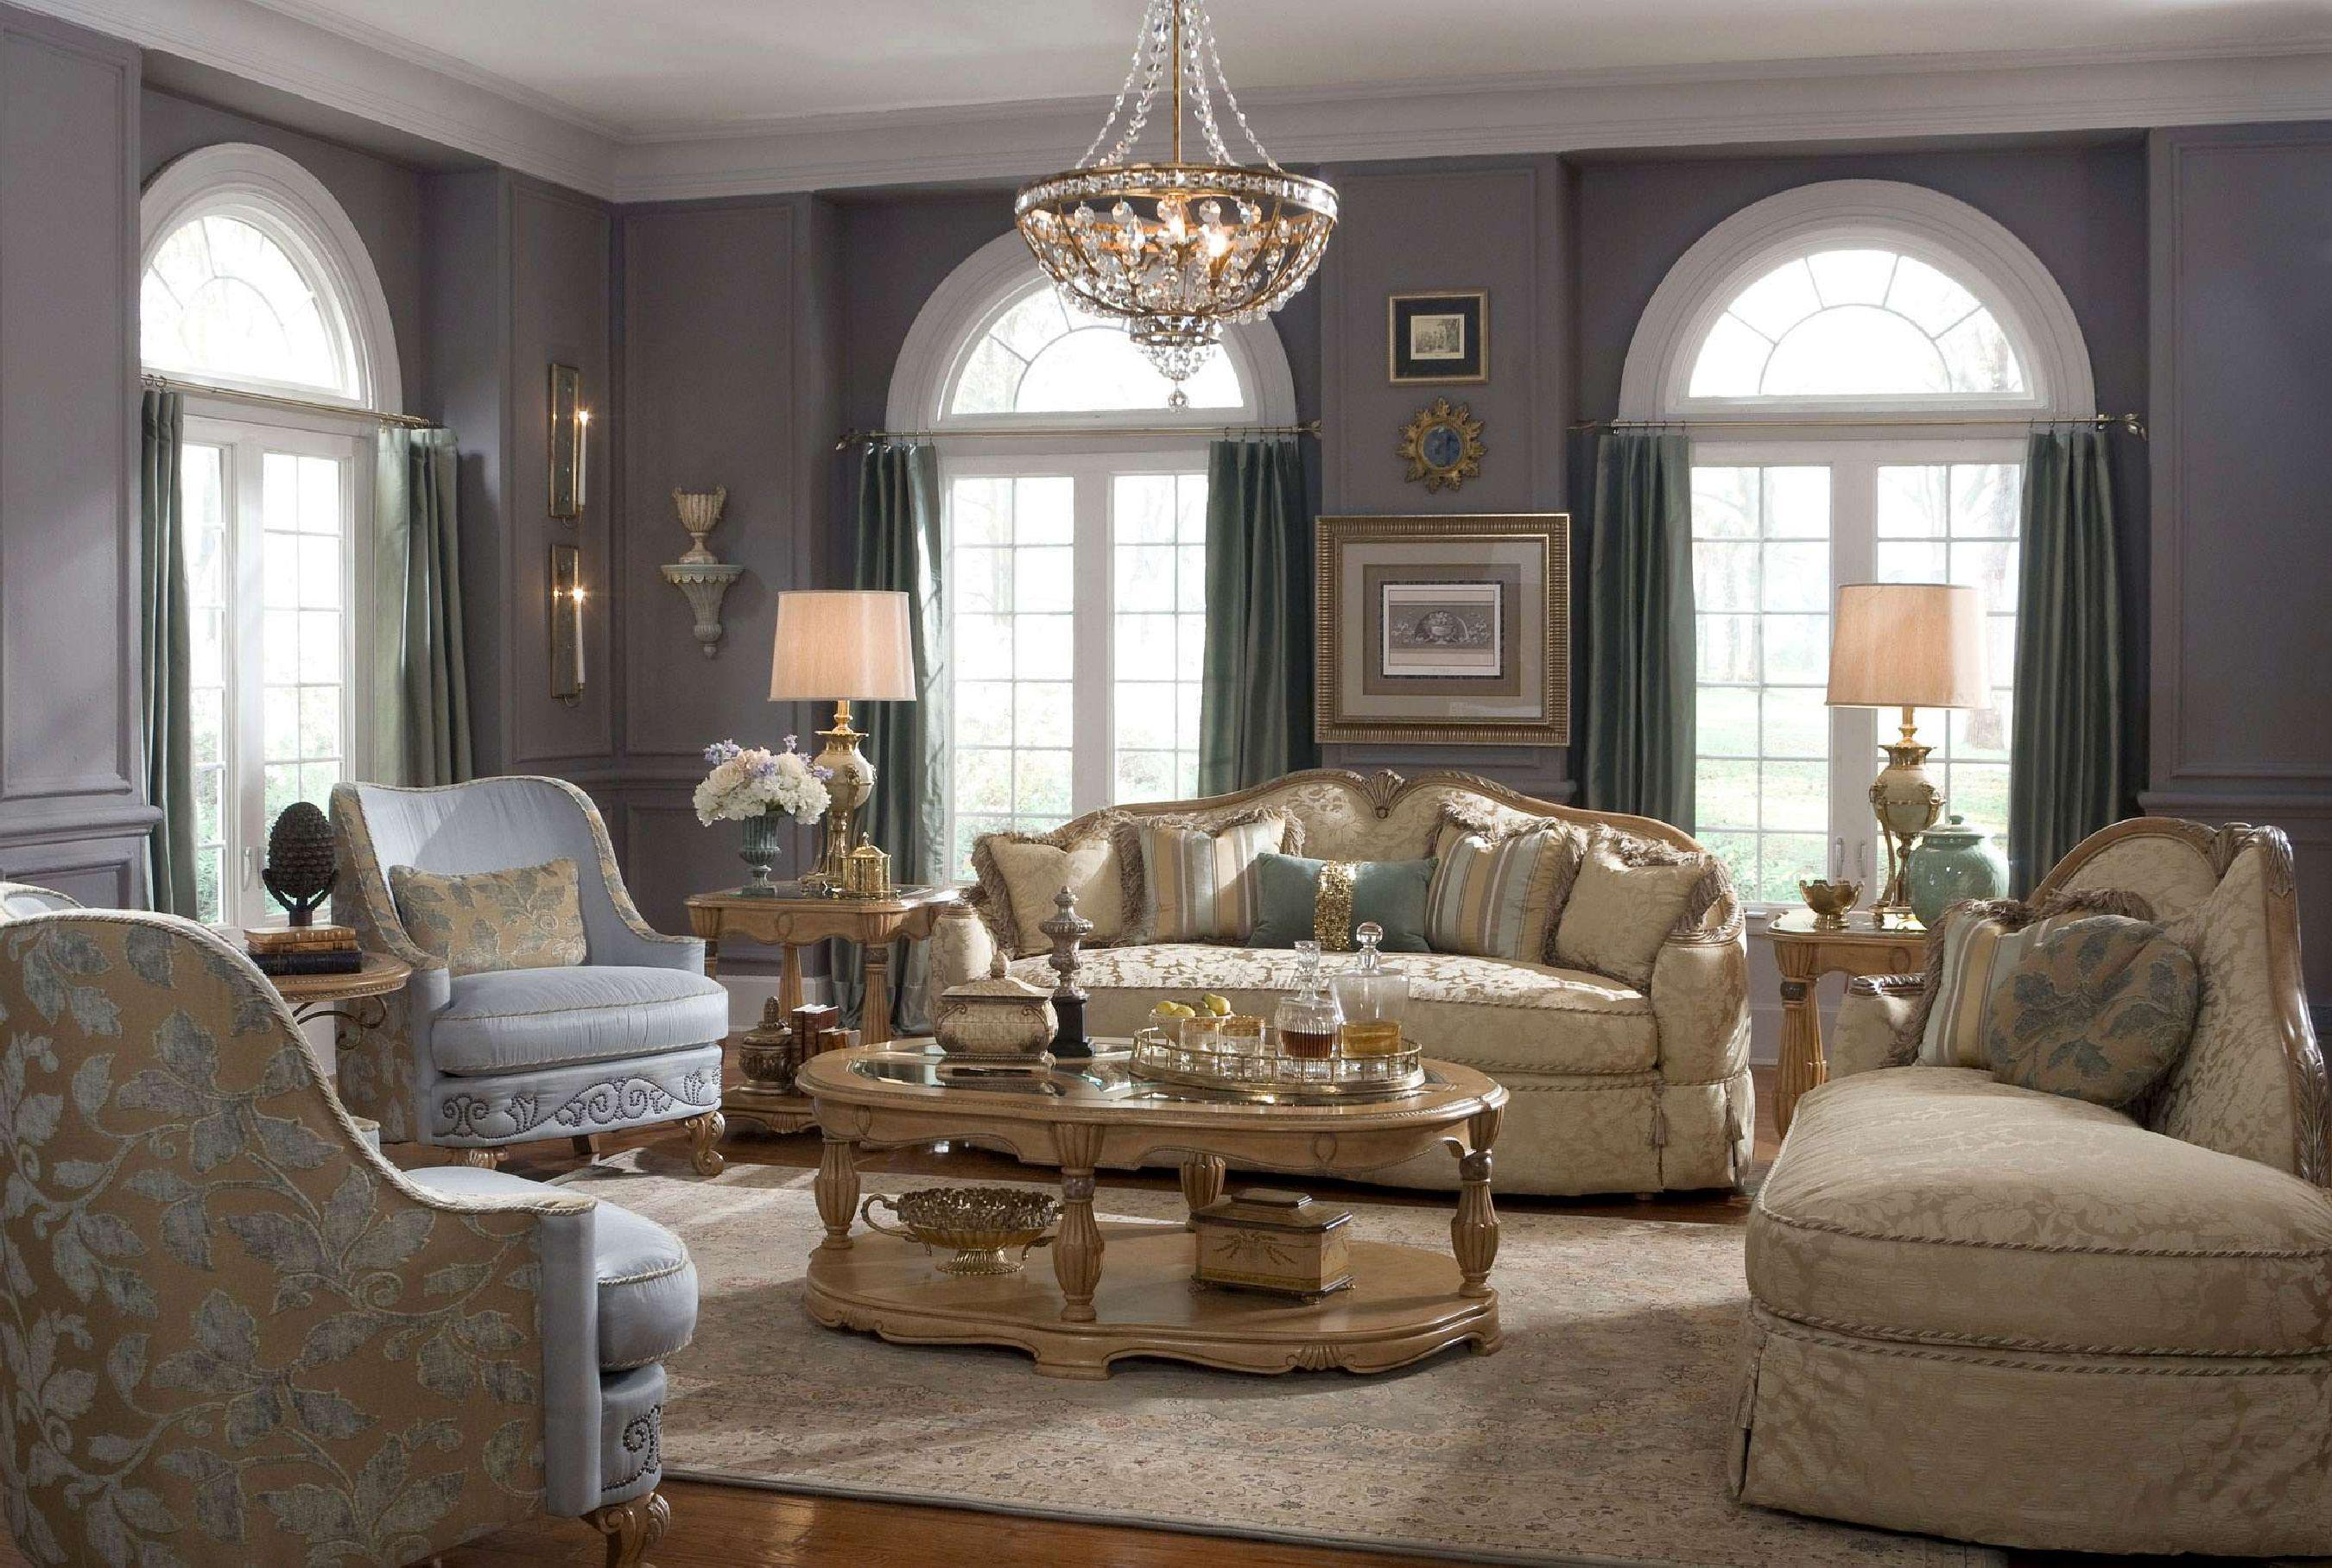 3 Benefits Of Decorating Your Home With Antiques  3. Cheap Sectional Living Room Sets. Living Room Window Design Ideas. Furniture Chairs Living Room. Living Room Paint Colours India. Small Living Room And Kitchen Layouts. Cheap 3 Piece Living Room Sets. Living Room Wall Mirrors. Ideas For Small Living Rooms